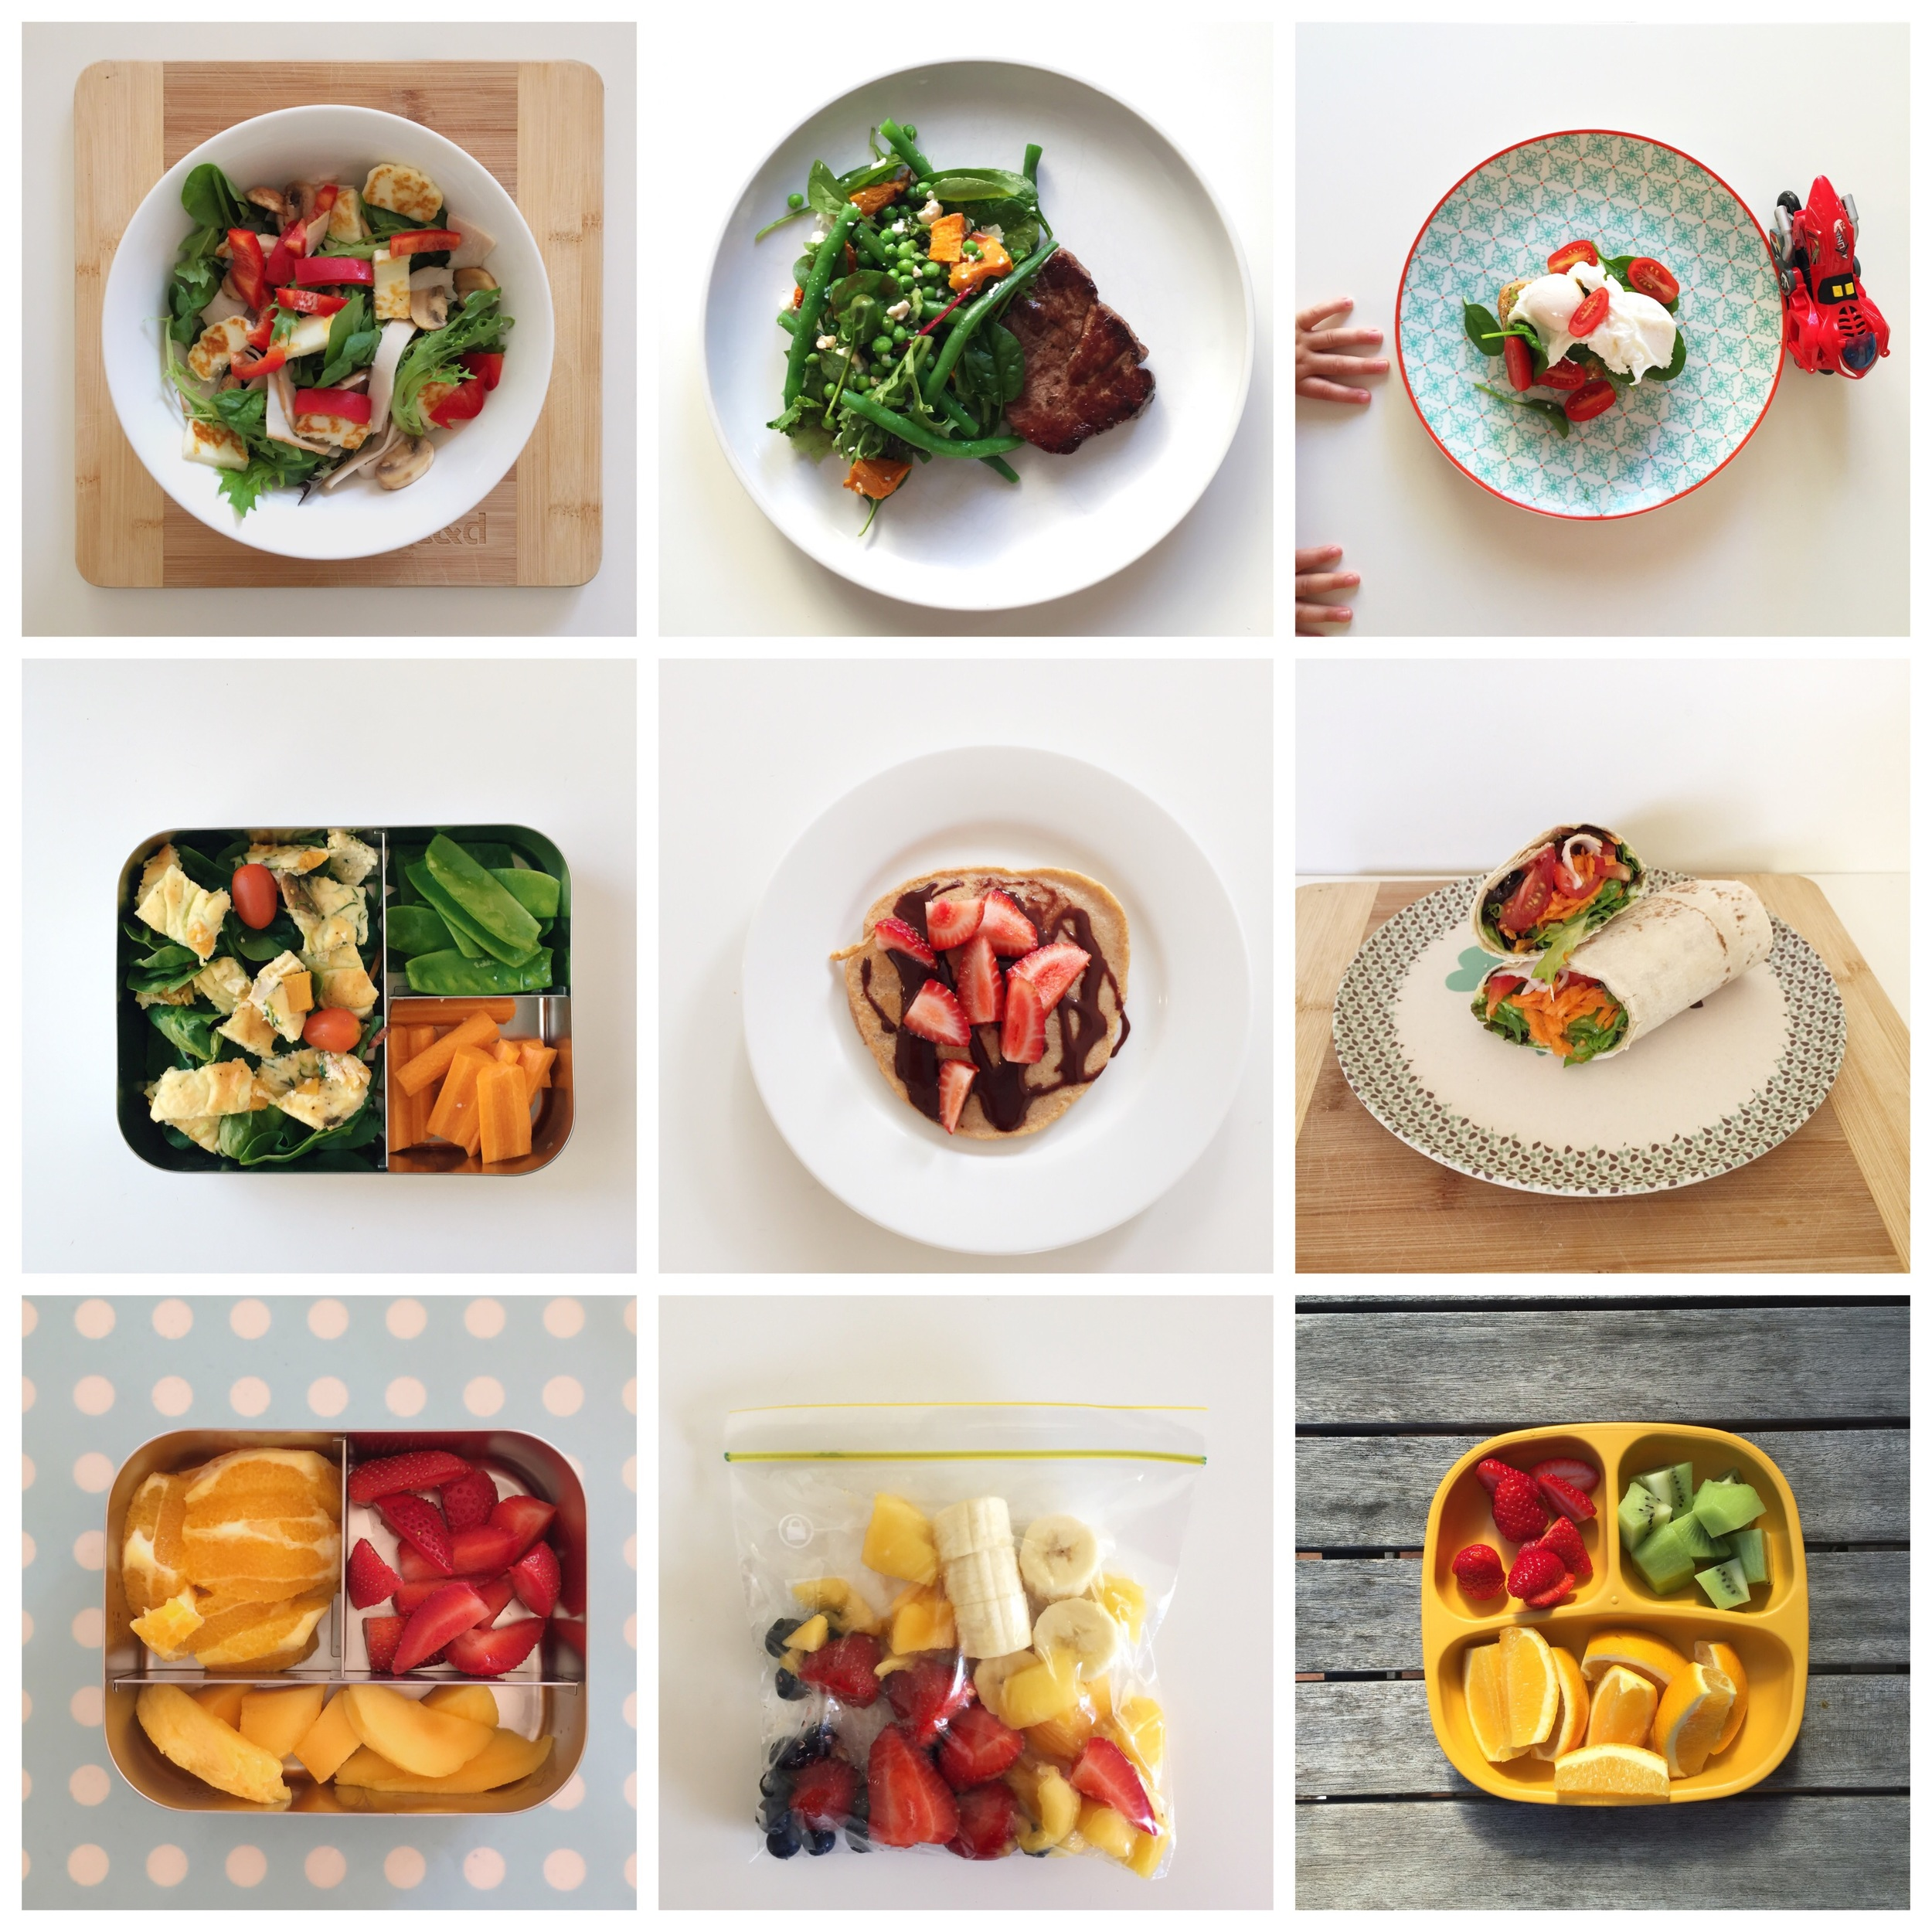 Some of the healthy food I ate over the last 12 weeks. Preparing meals in advance was the key to sticking with the healthy eating for me.